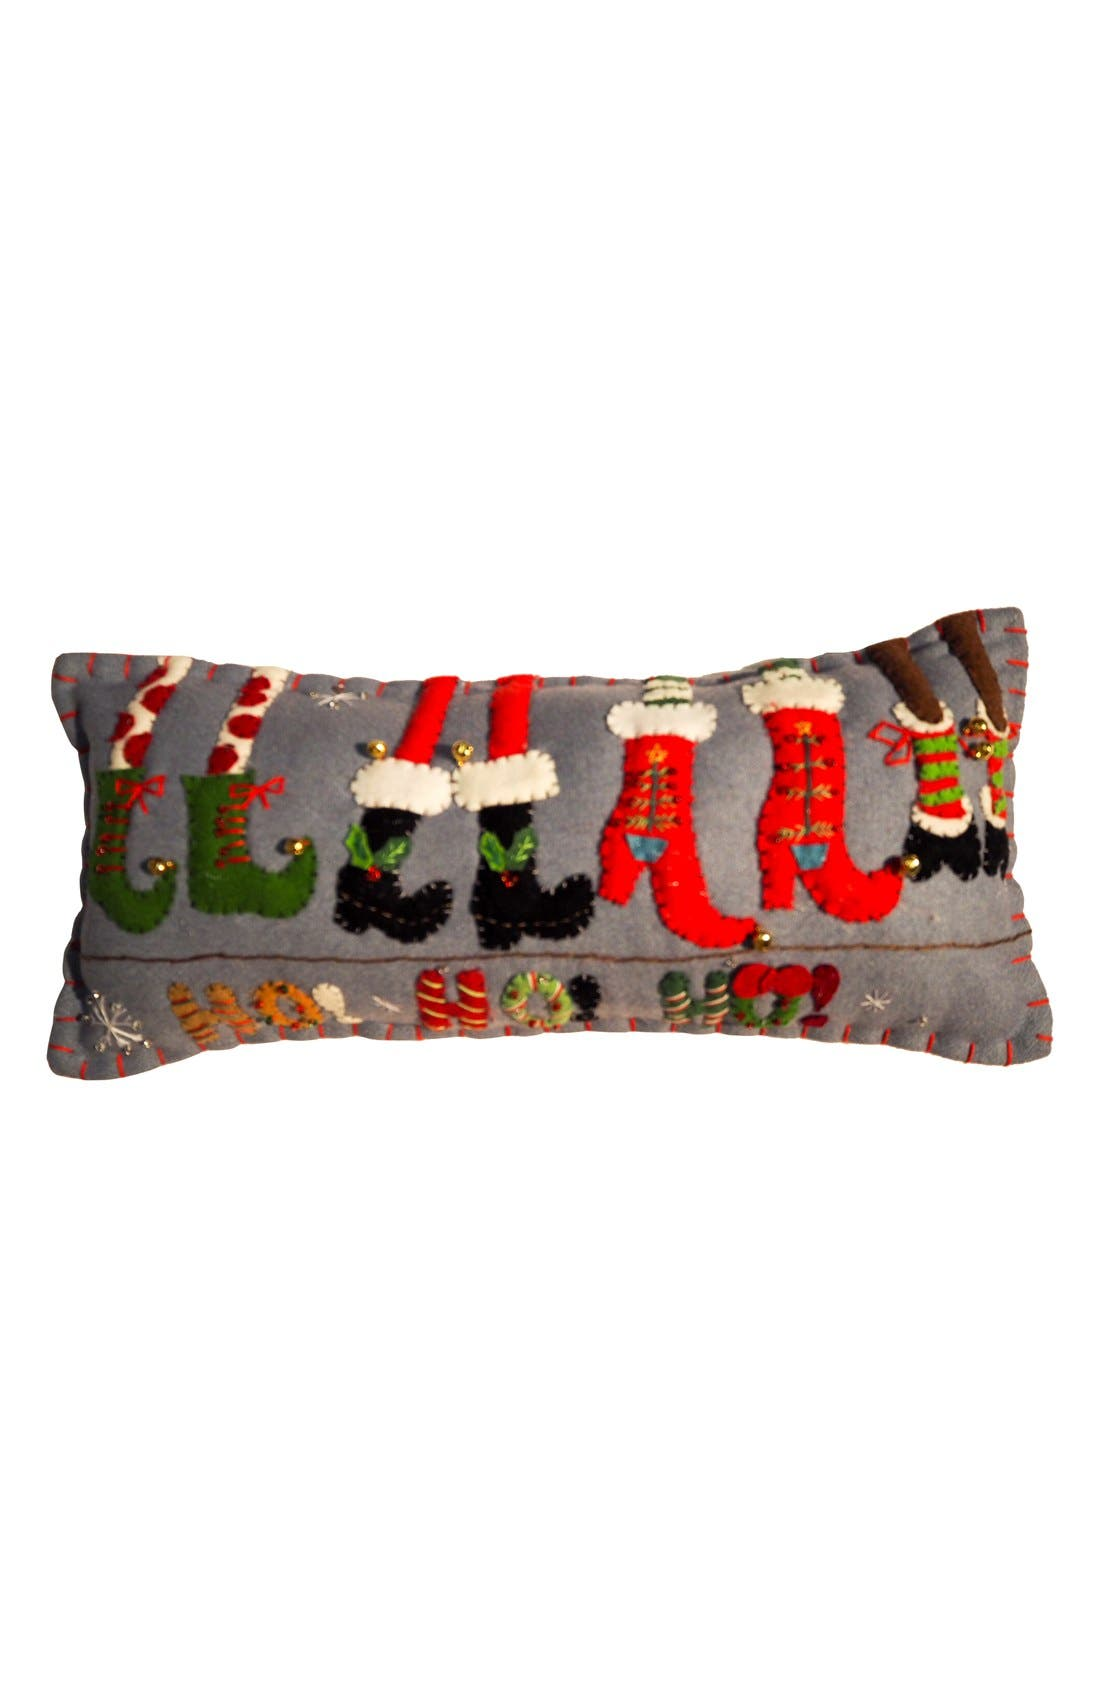 Alternate Image 1 Selected - New World Arts Cute Shoes Accent Pillow